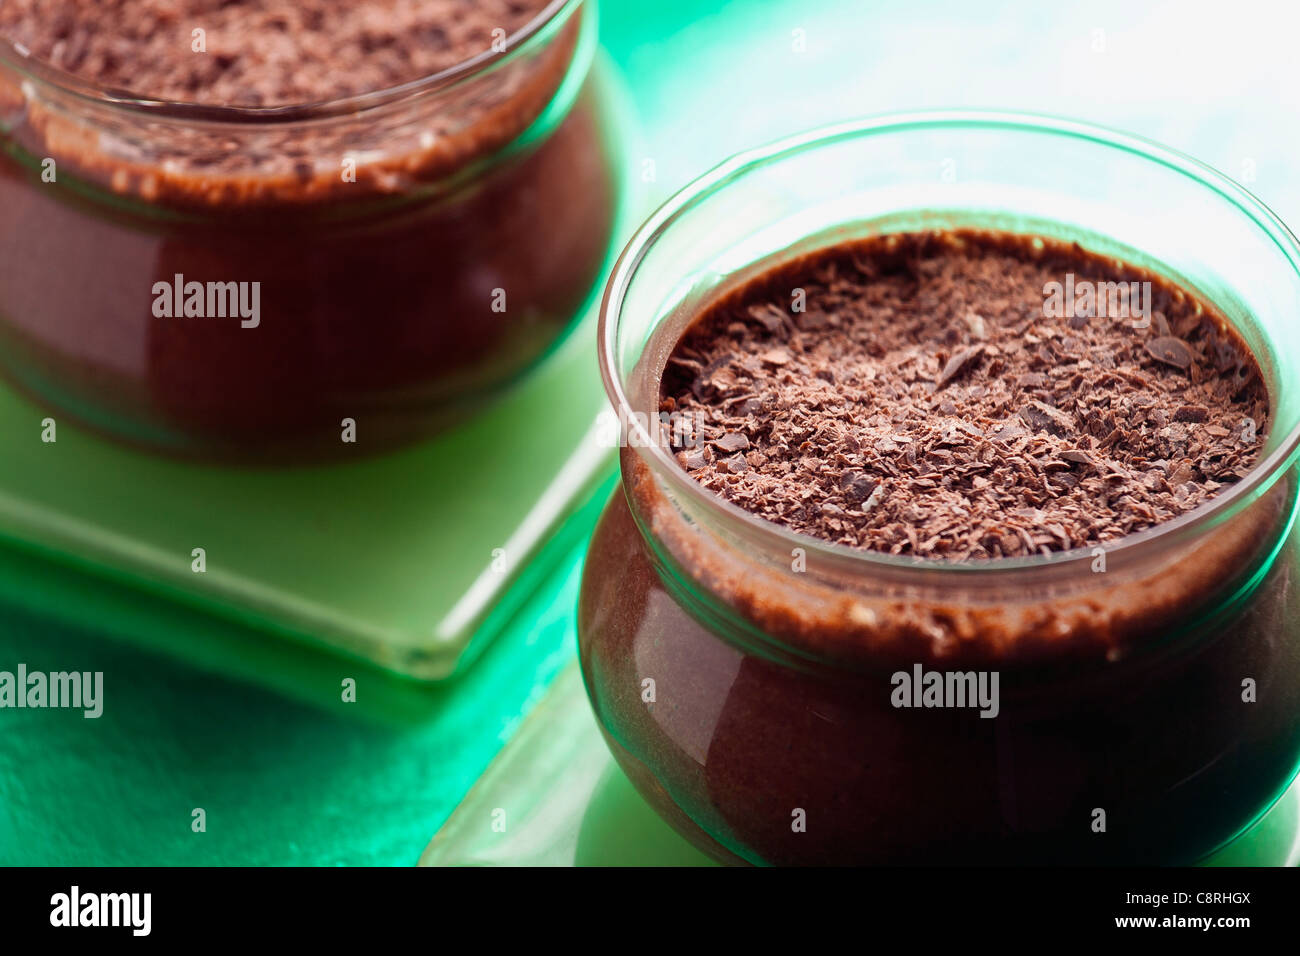 Close-up photograph of two chocolate mousse pots set on a green background - Stock Image